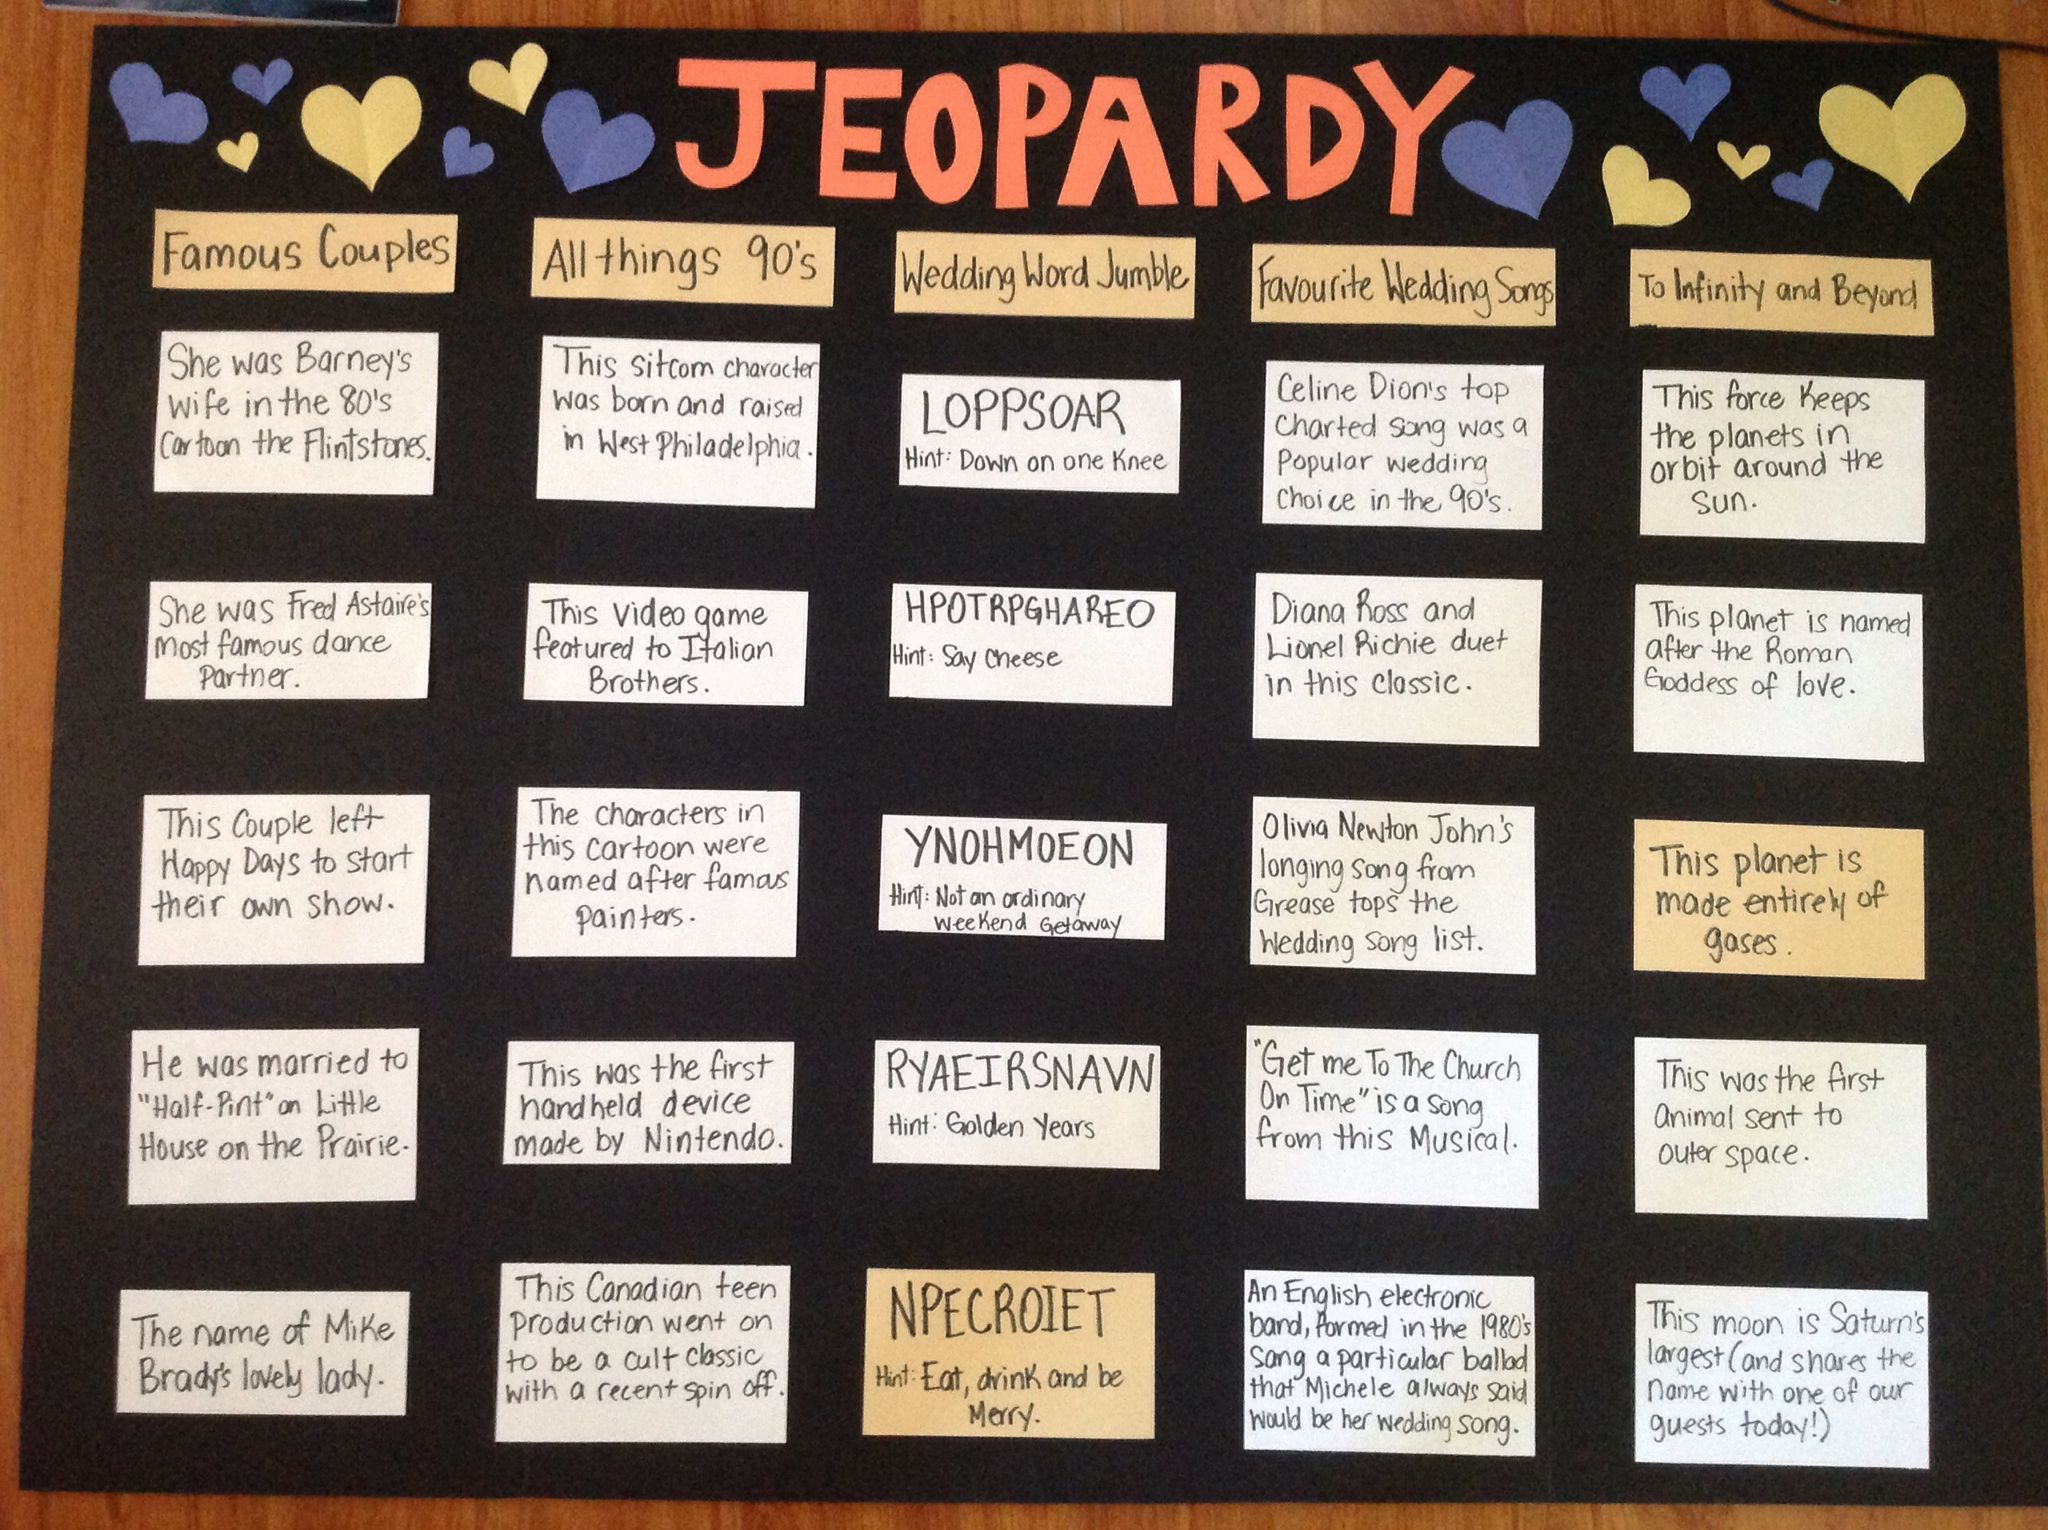 Jeopardy Questions For Jack And Jill Party Make It Personal Or Keep It Generic Su Couple Wedding Shower Bridal Shower Activities Couples Wedding Shower Games